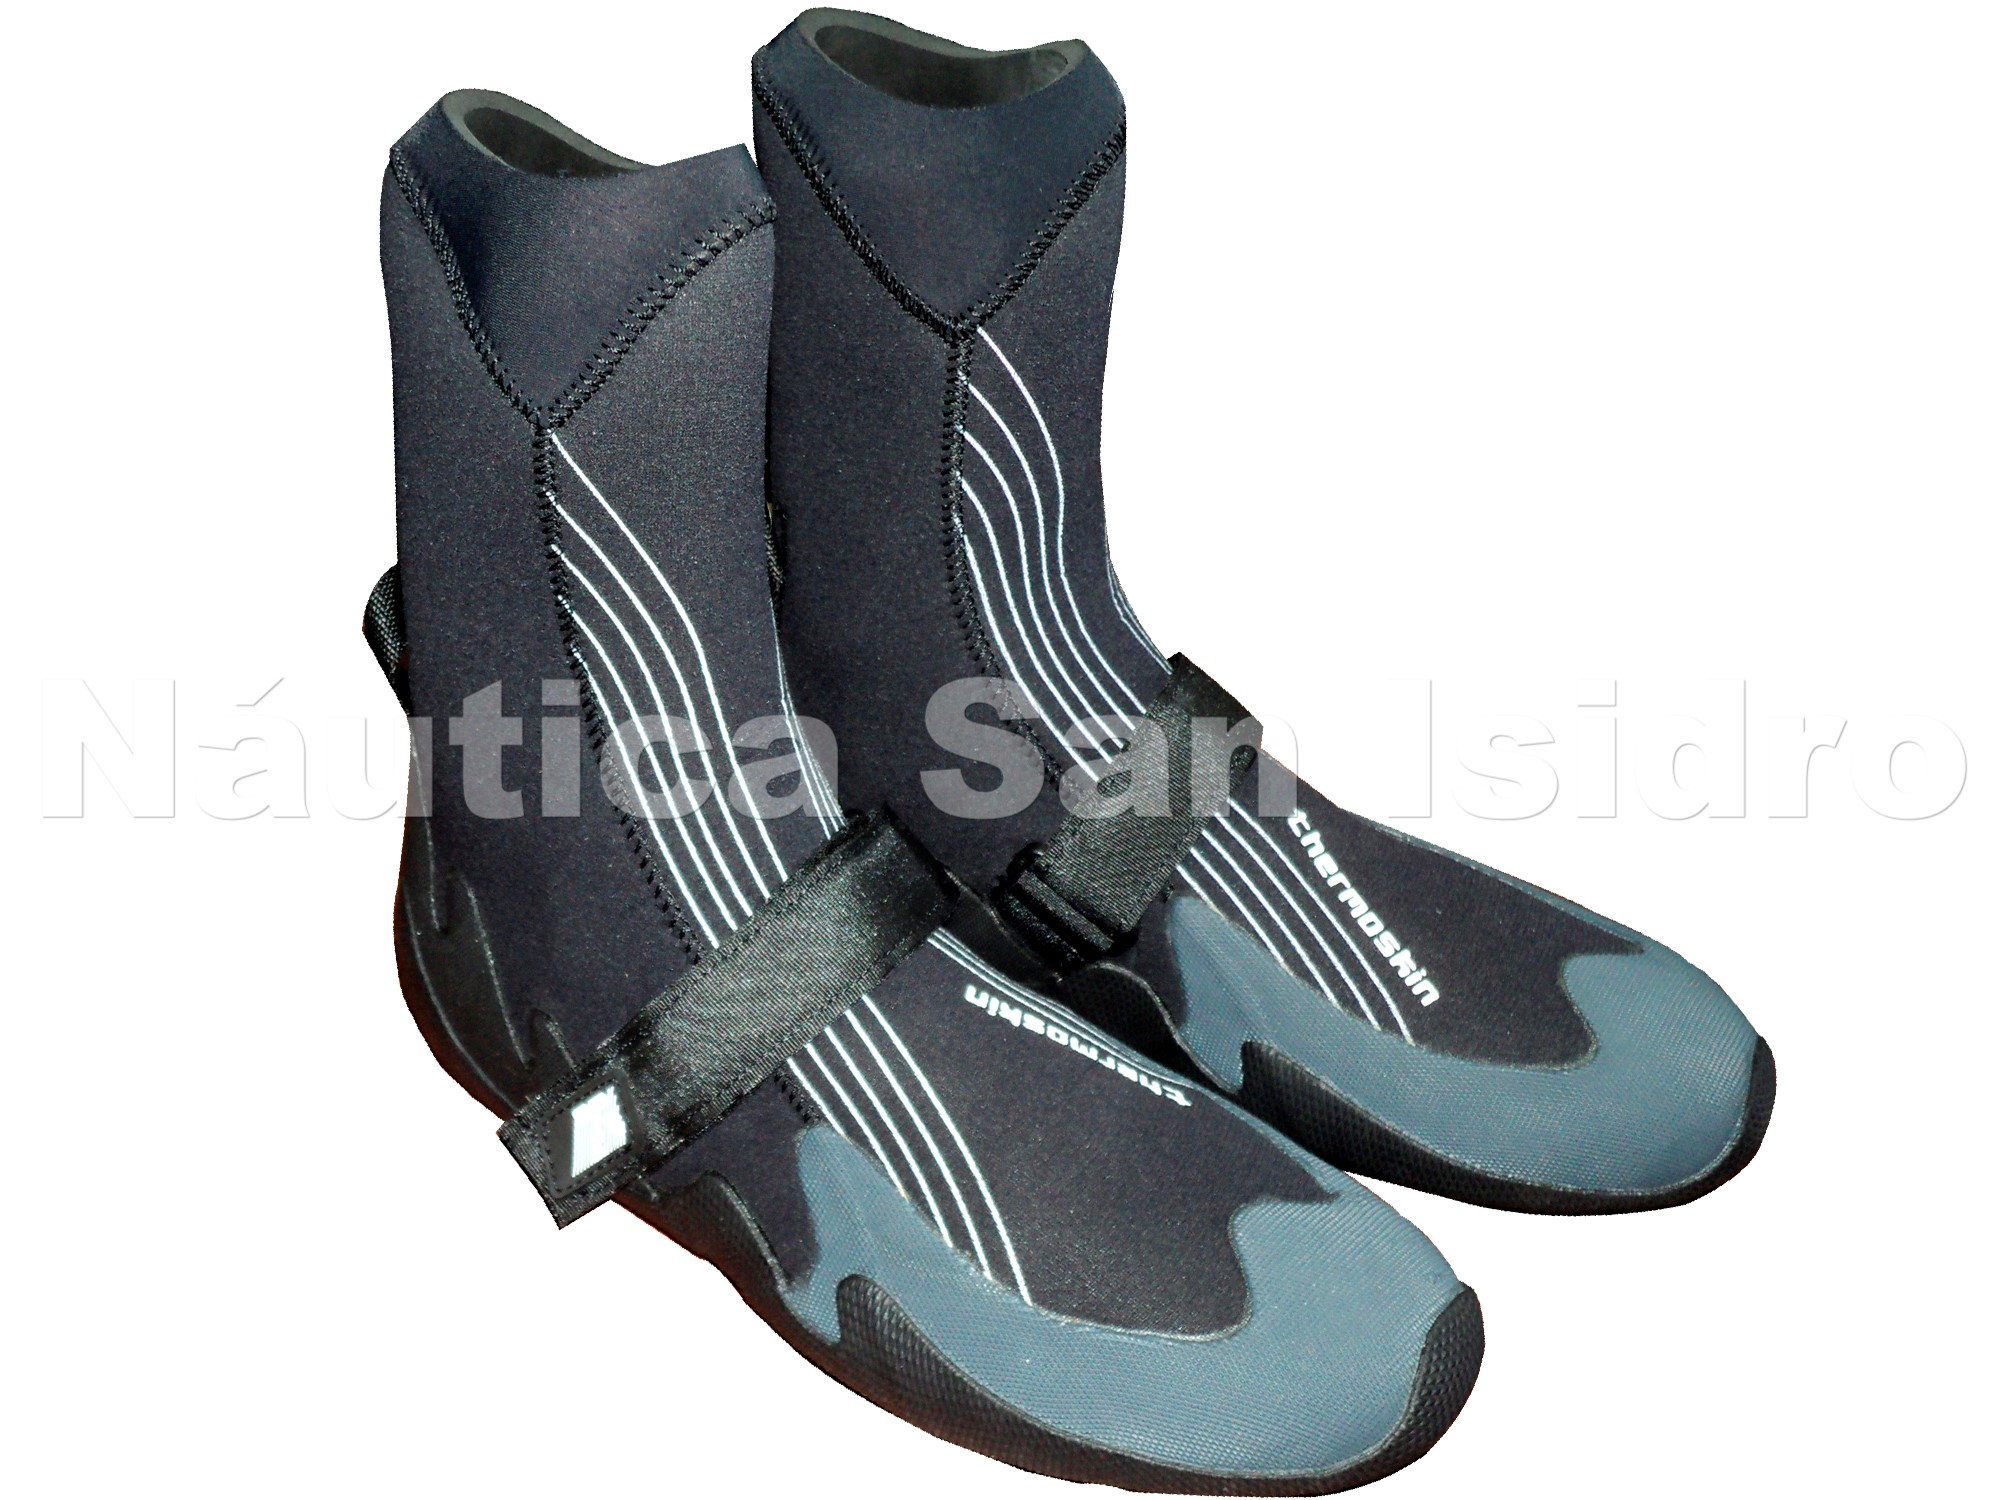 BOTAS NEOPRENE ALTA 4mm THERMOSKIN